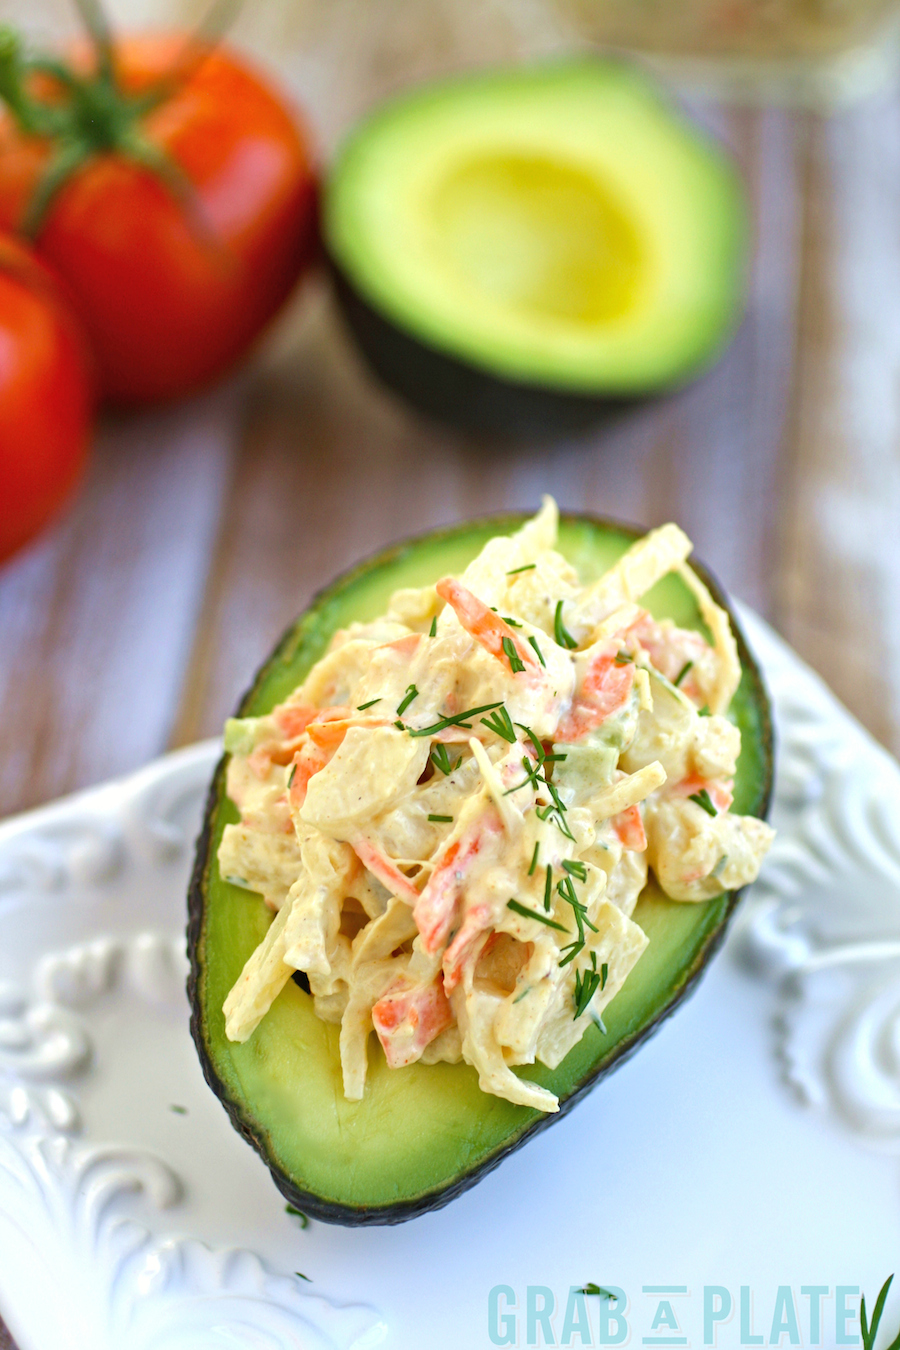 Avocado-stuffed-hearts-of-palm-crabless-salad